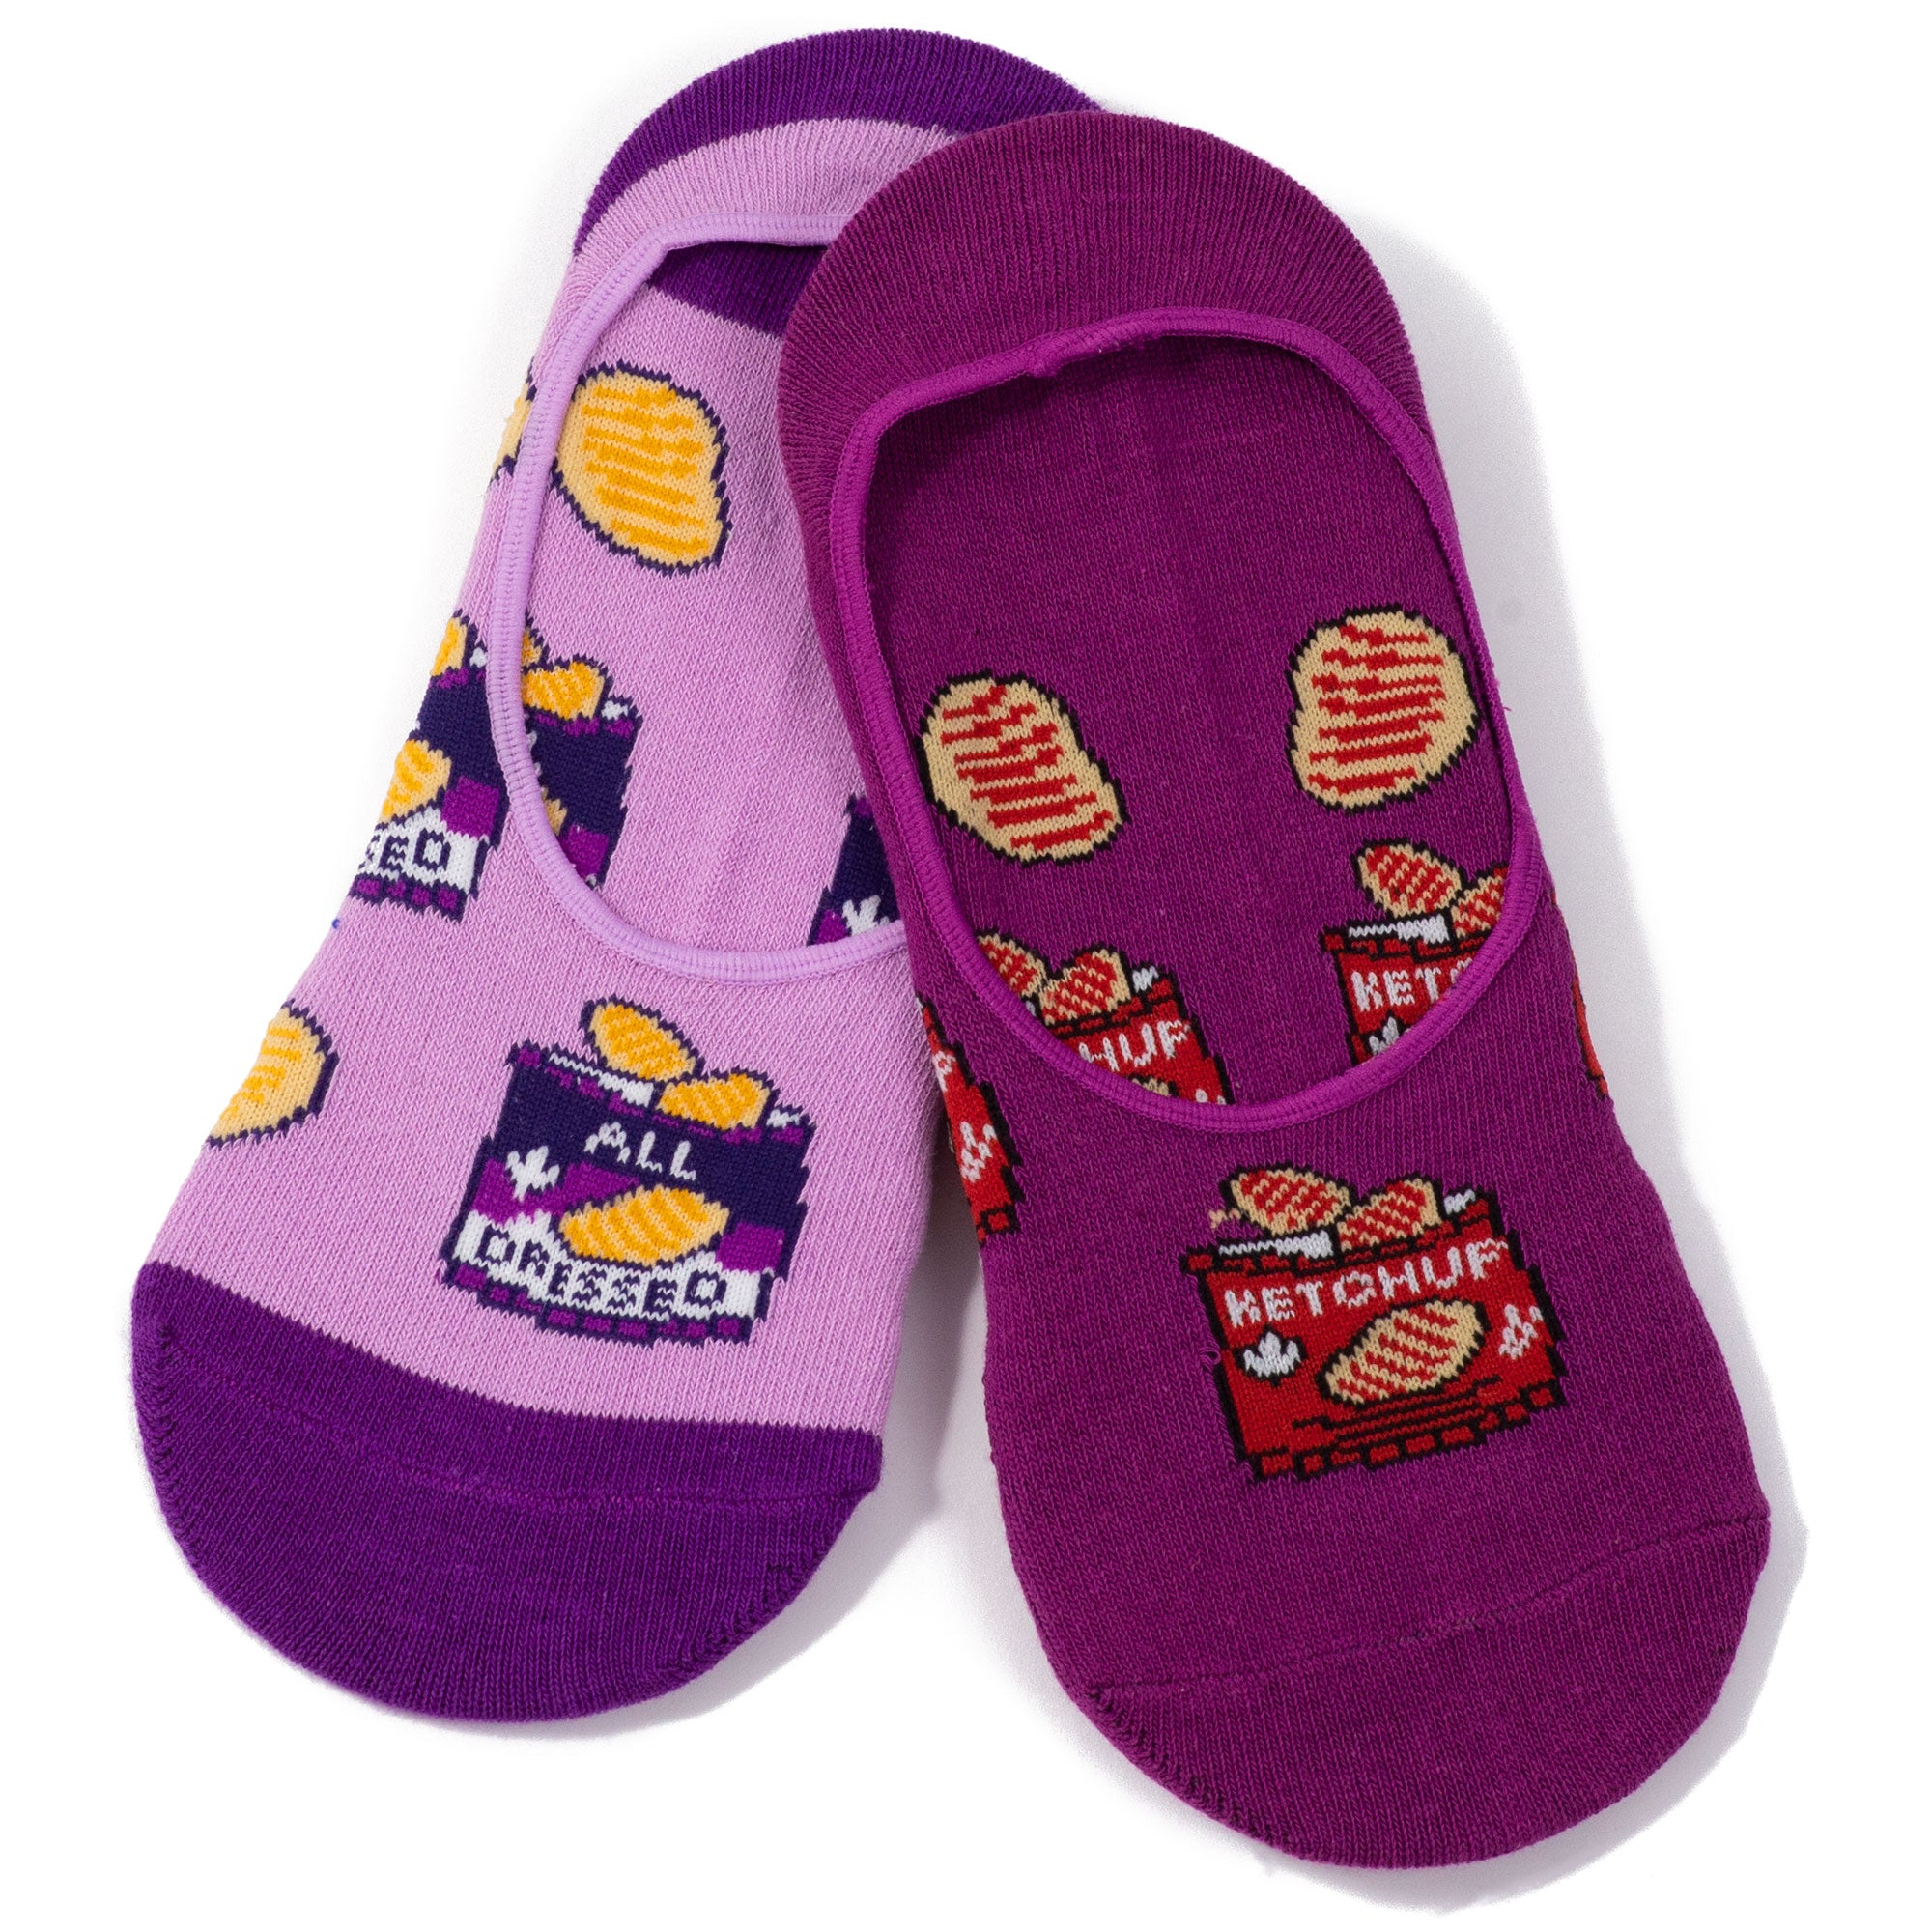 Womens Canadian Ketchup & All Dressed Chips Socks